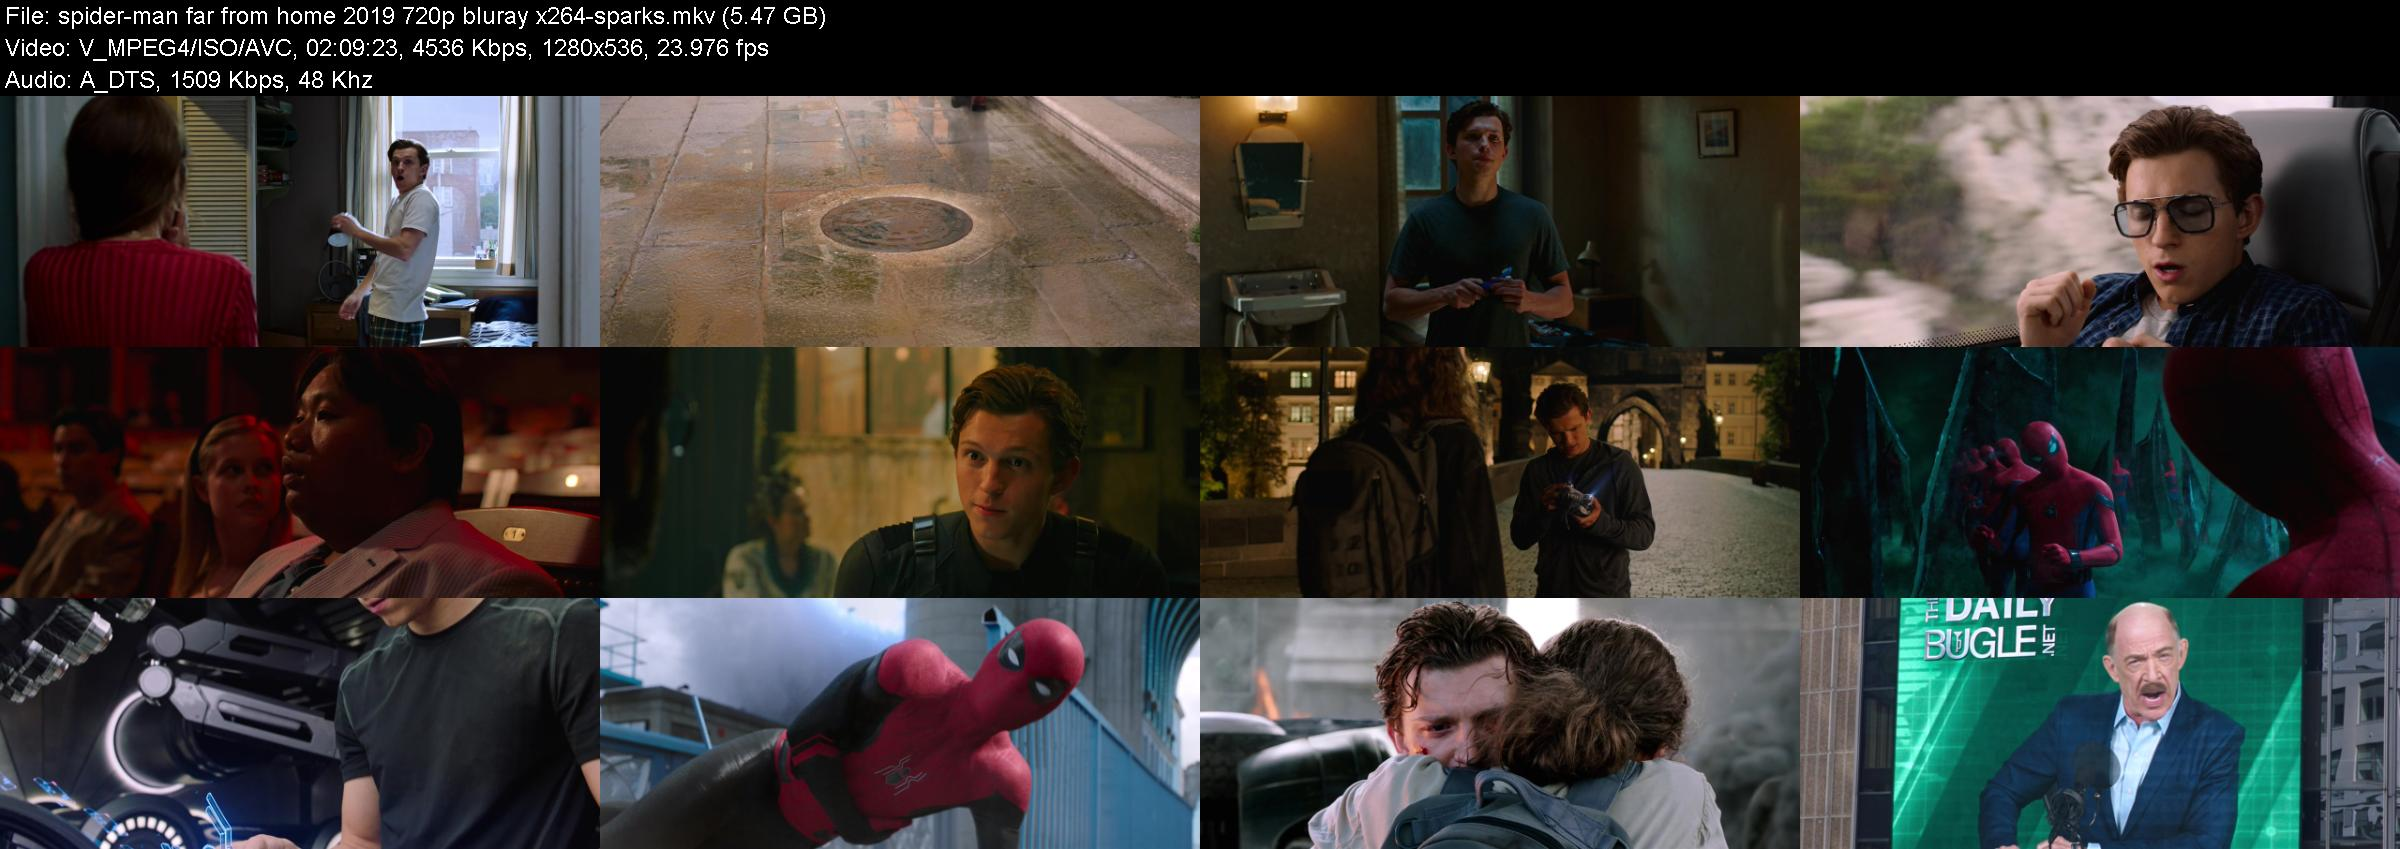 Spider-Man Far from Home 2019 720p BluRay x264-SPARKS